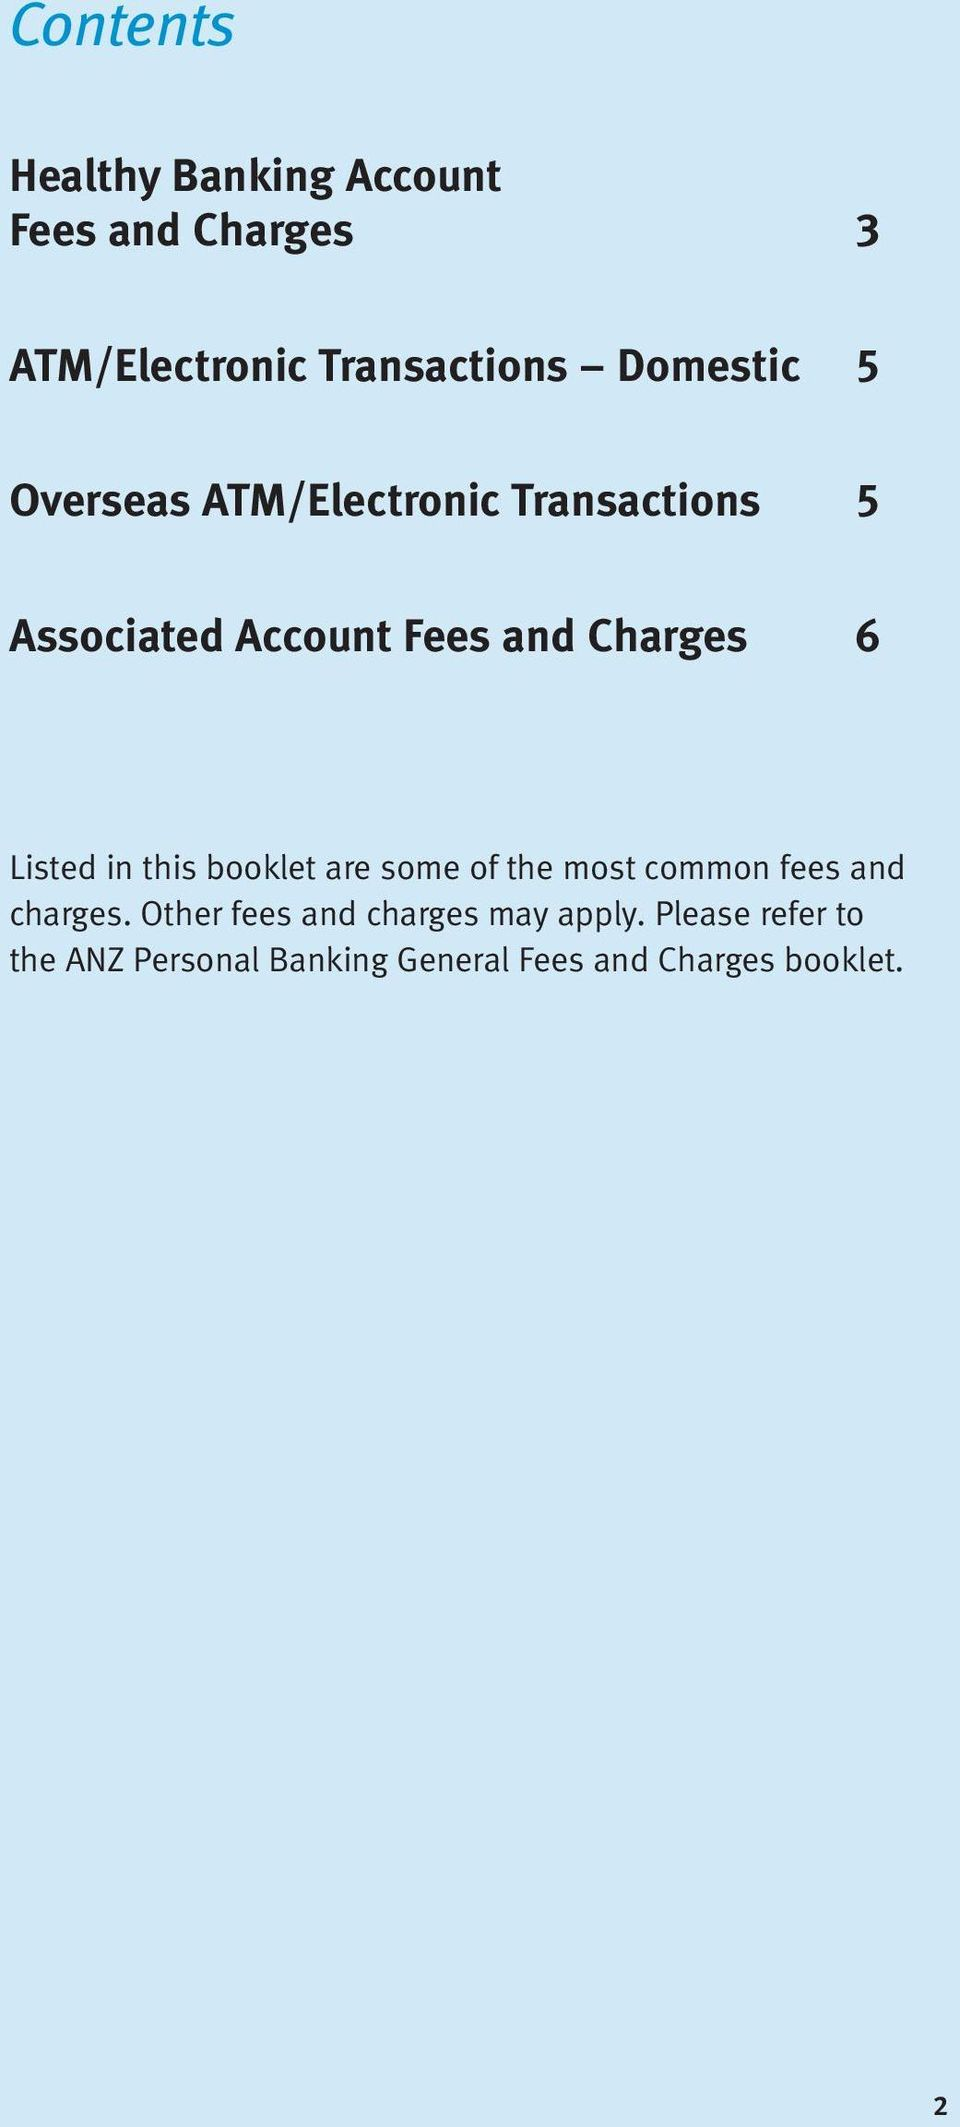 6 Listed in this booklet are some of the most common fees and charges.